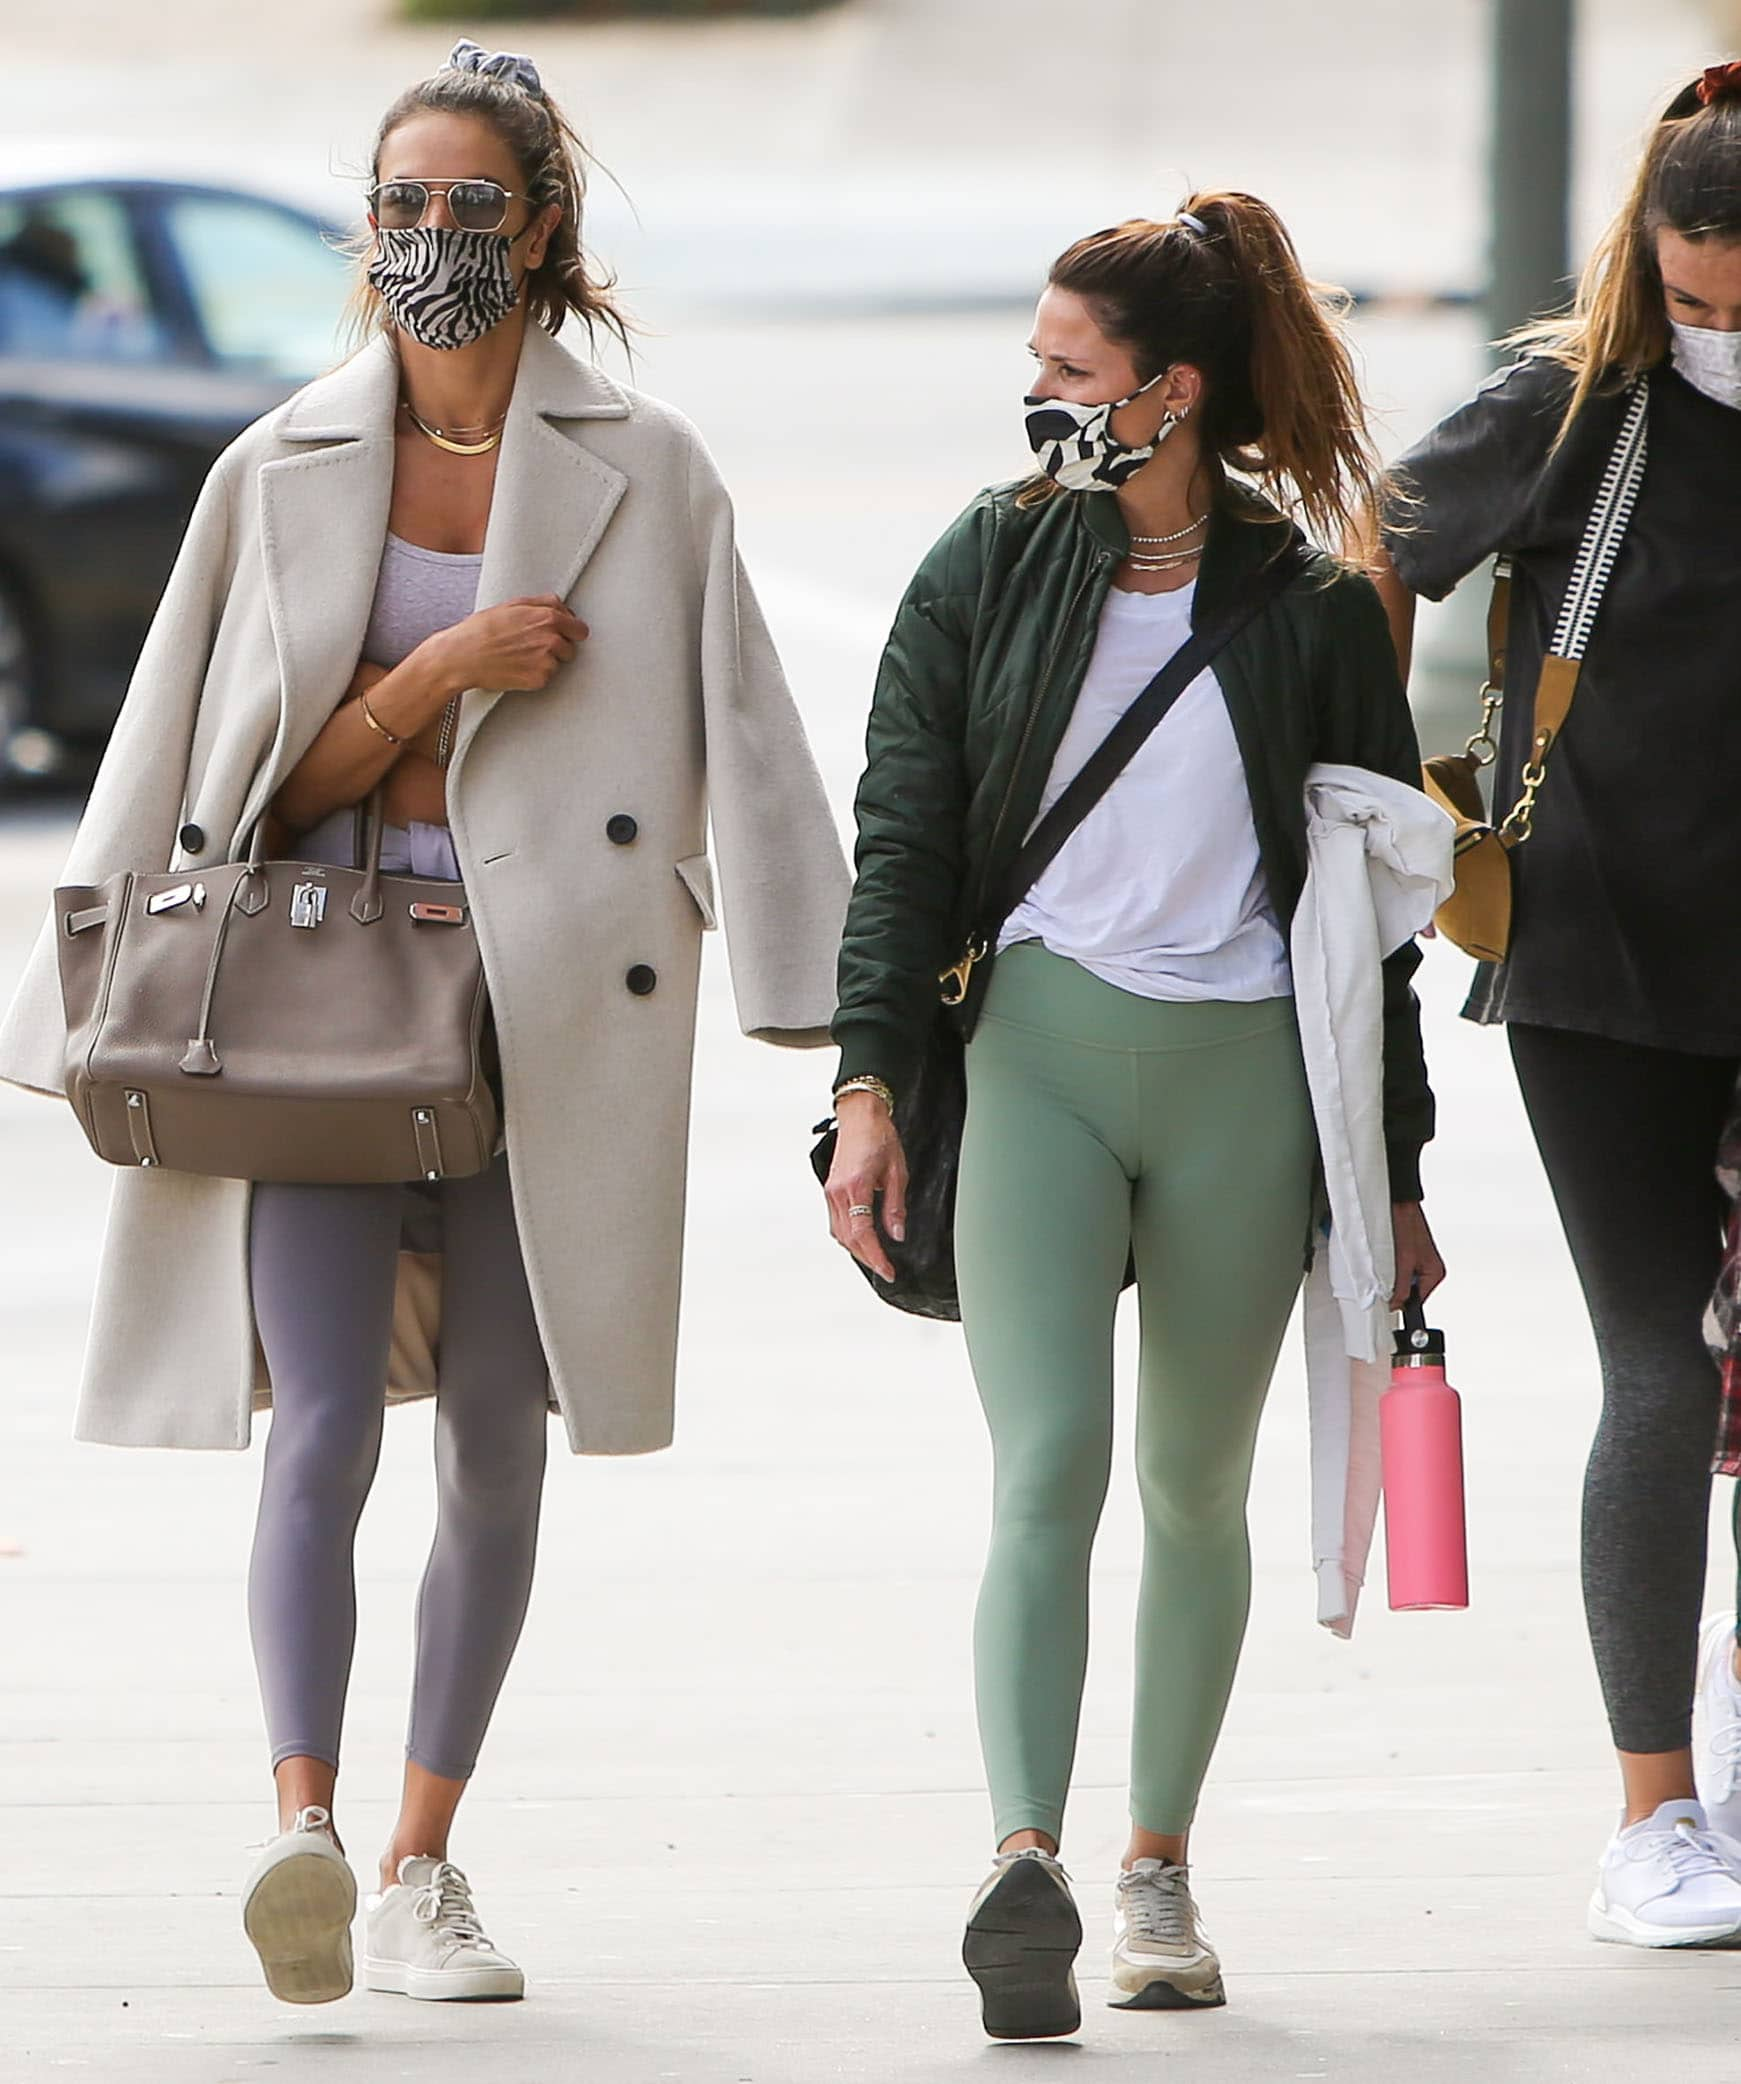 Alessandra Ambrosio steps out for Pilates with her girl pals in Los Angeles on March 10, 2021